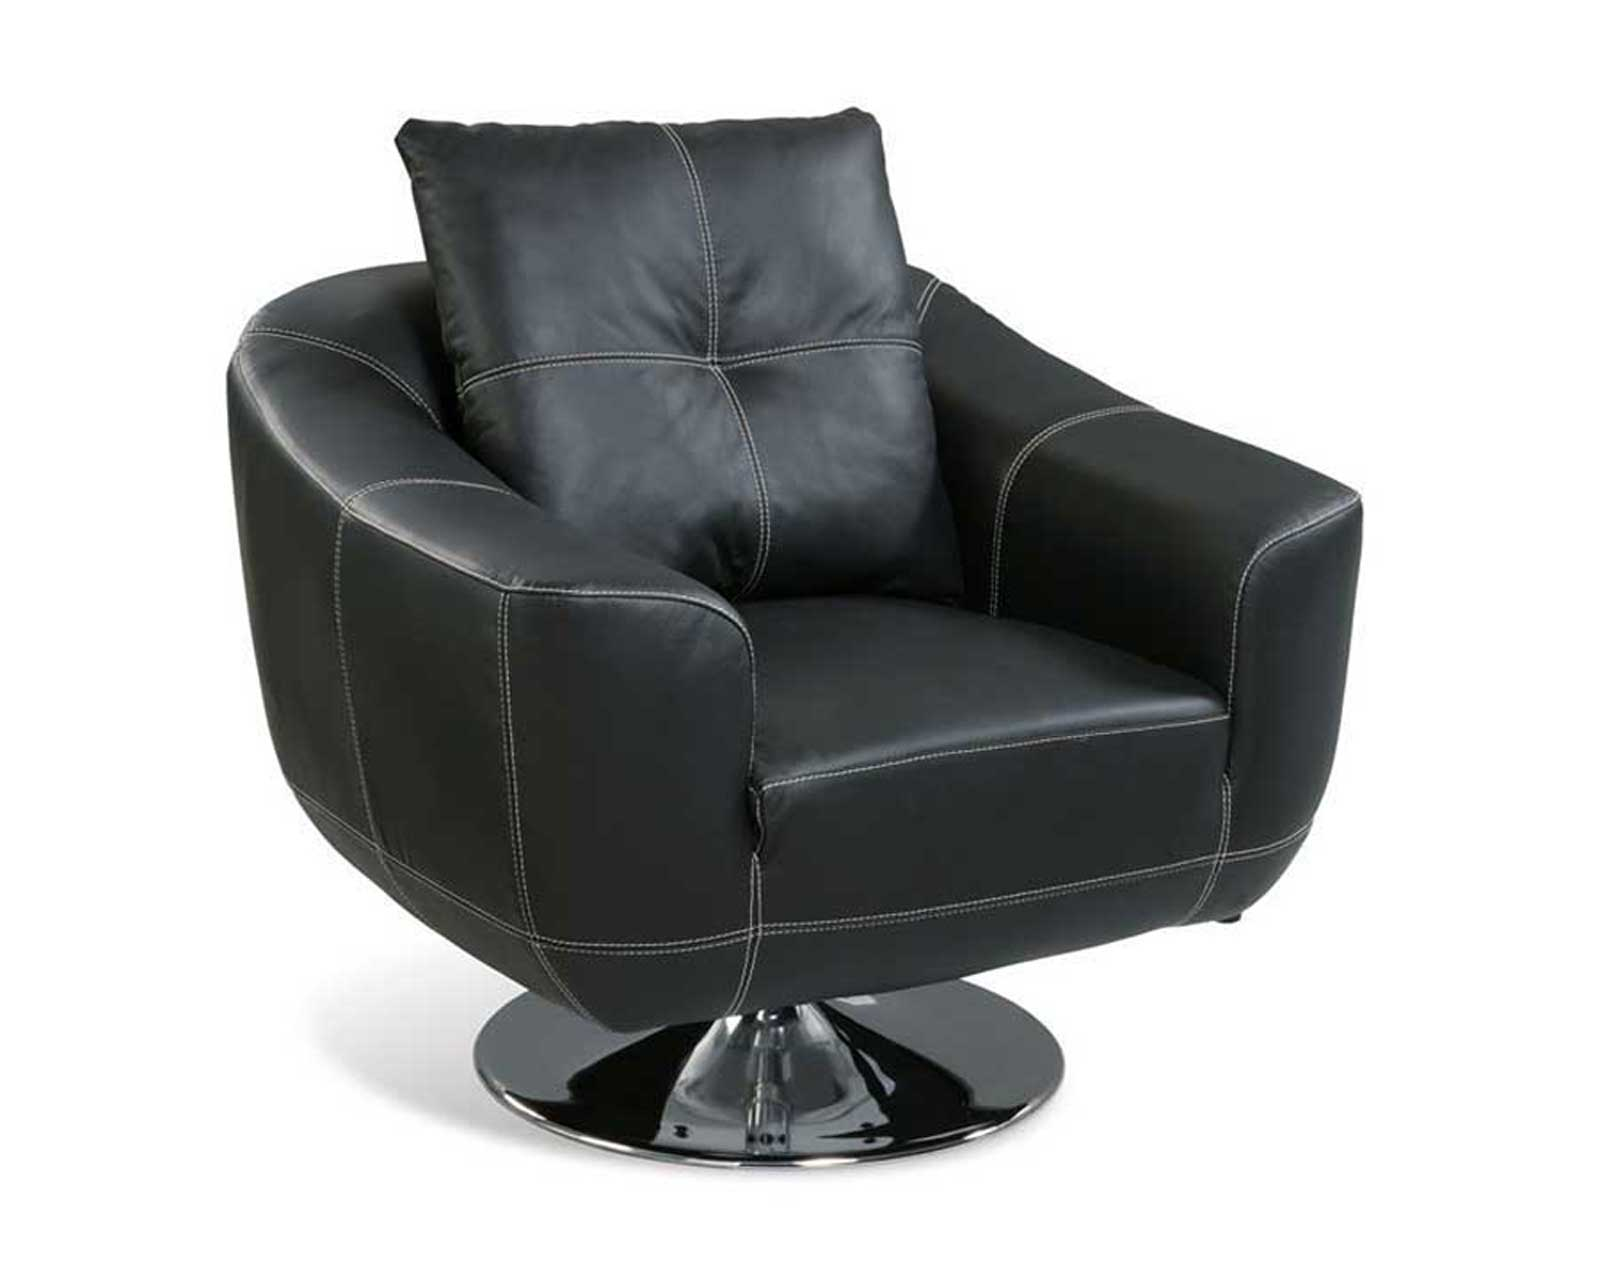 Leather Swivel Chairs For Home Office User